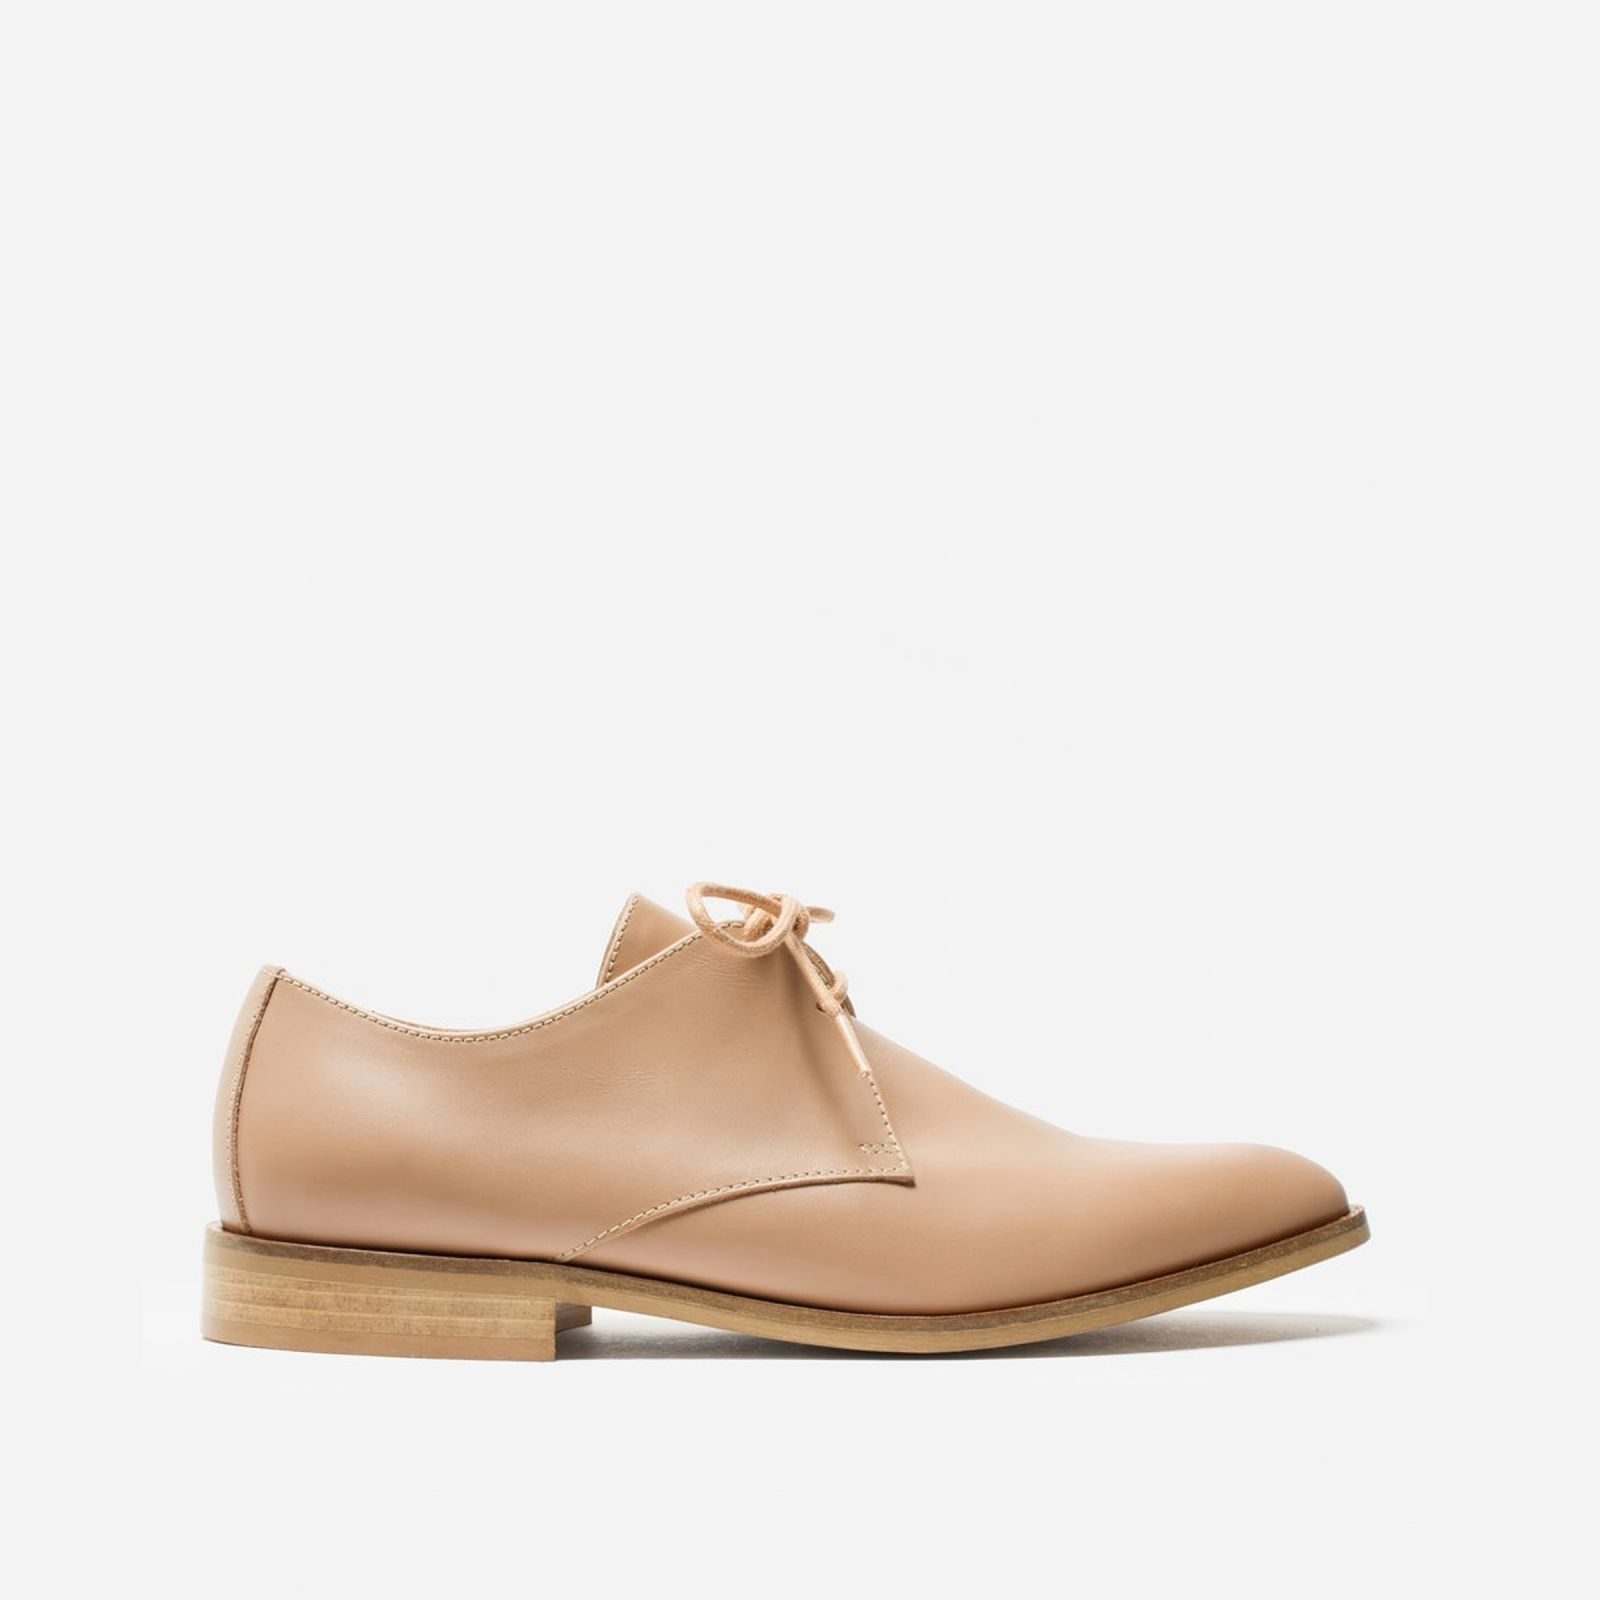 women's oxford shoes by everlane in blush, size 10.5